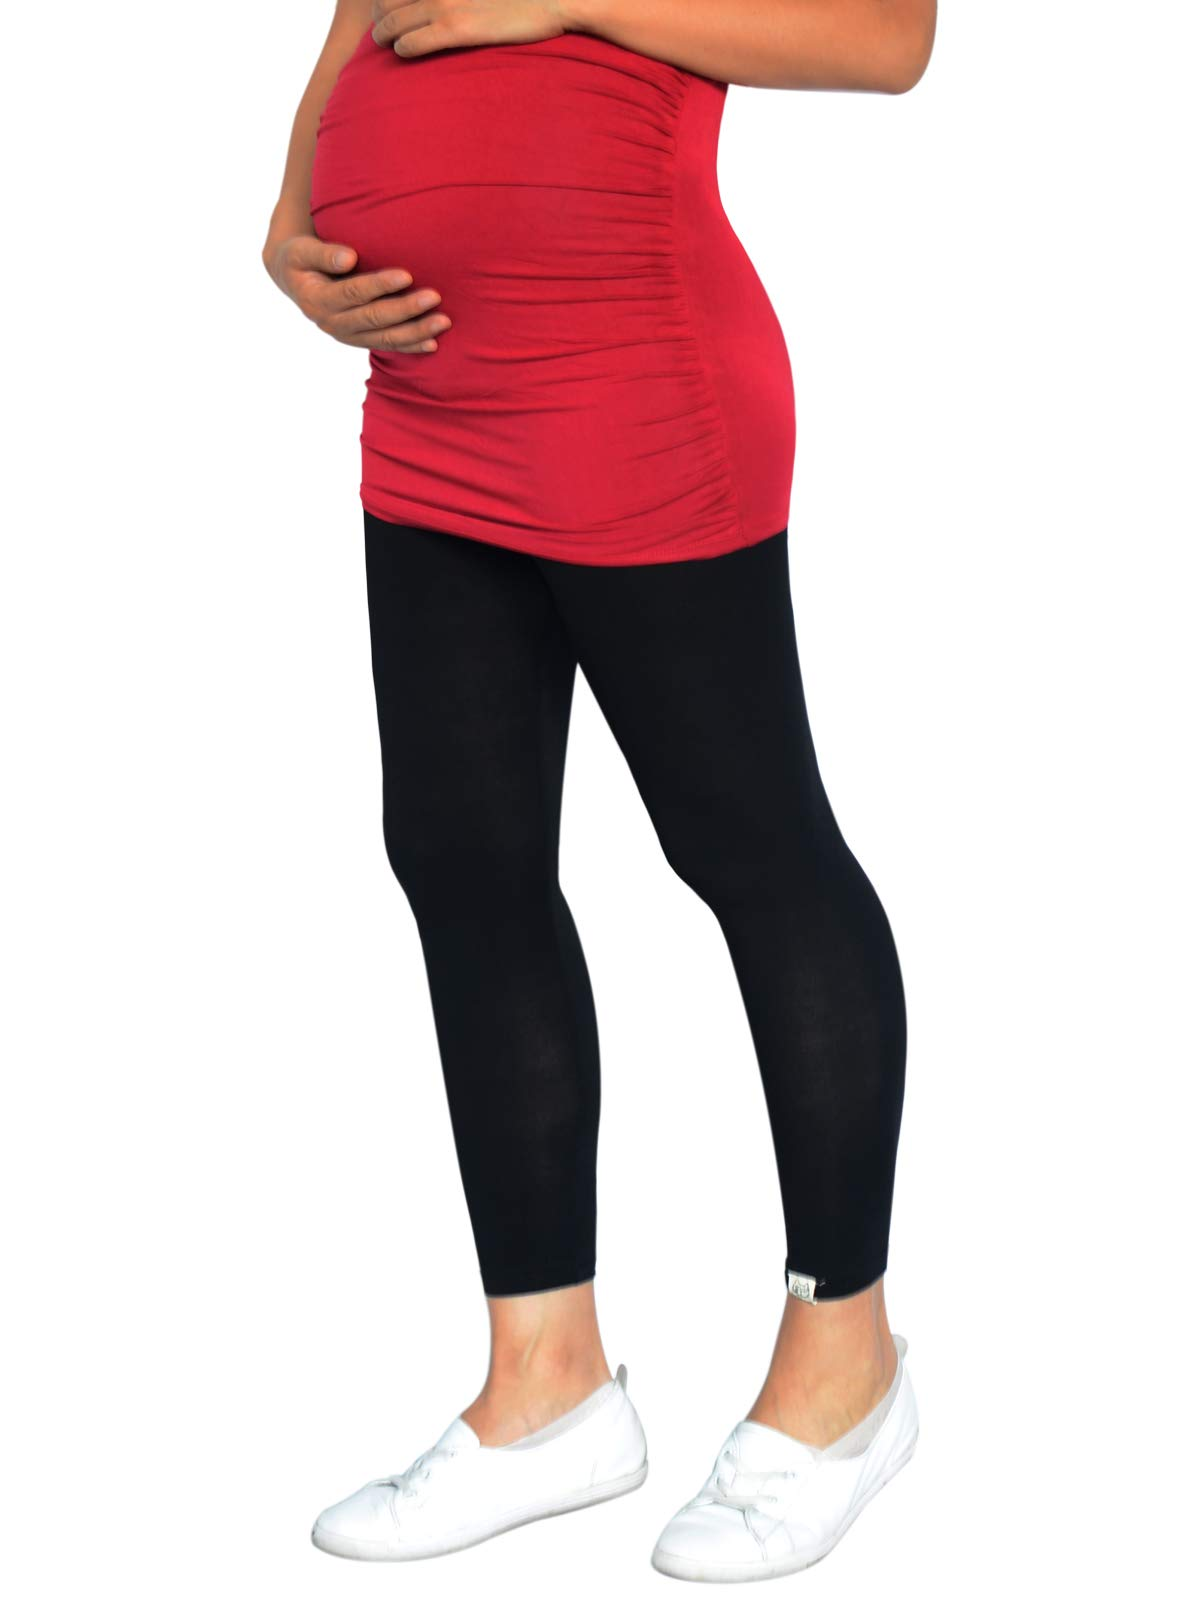 BlackCherry Maternity Activewear Leggings Tights Yoga Gym Clothes Jeggings Pants